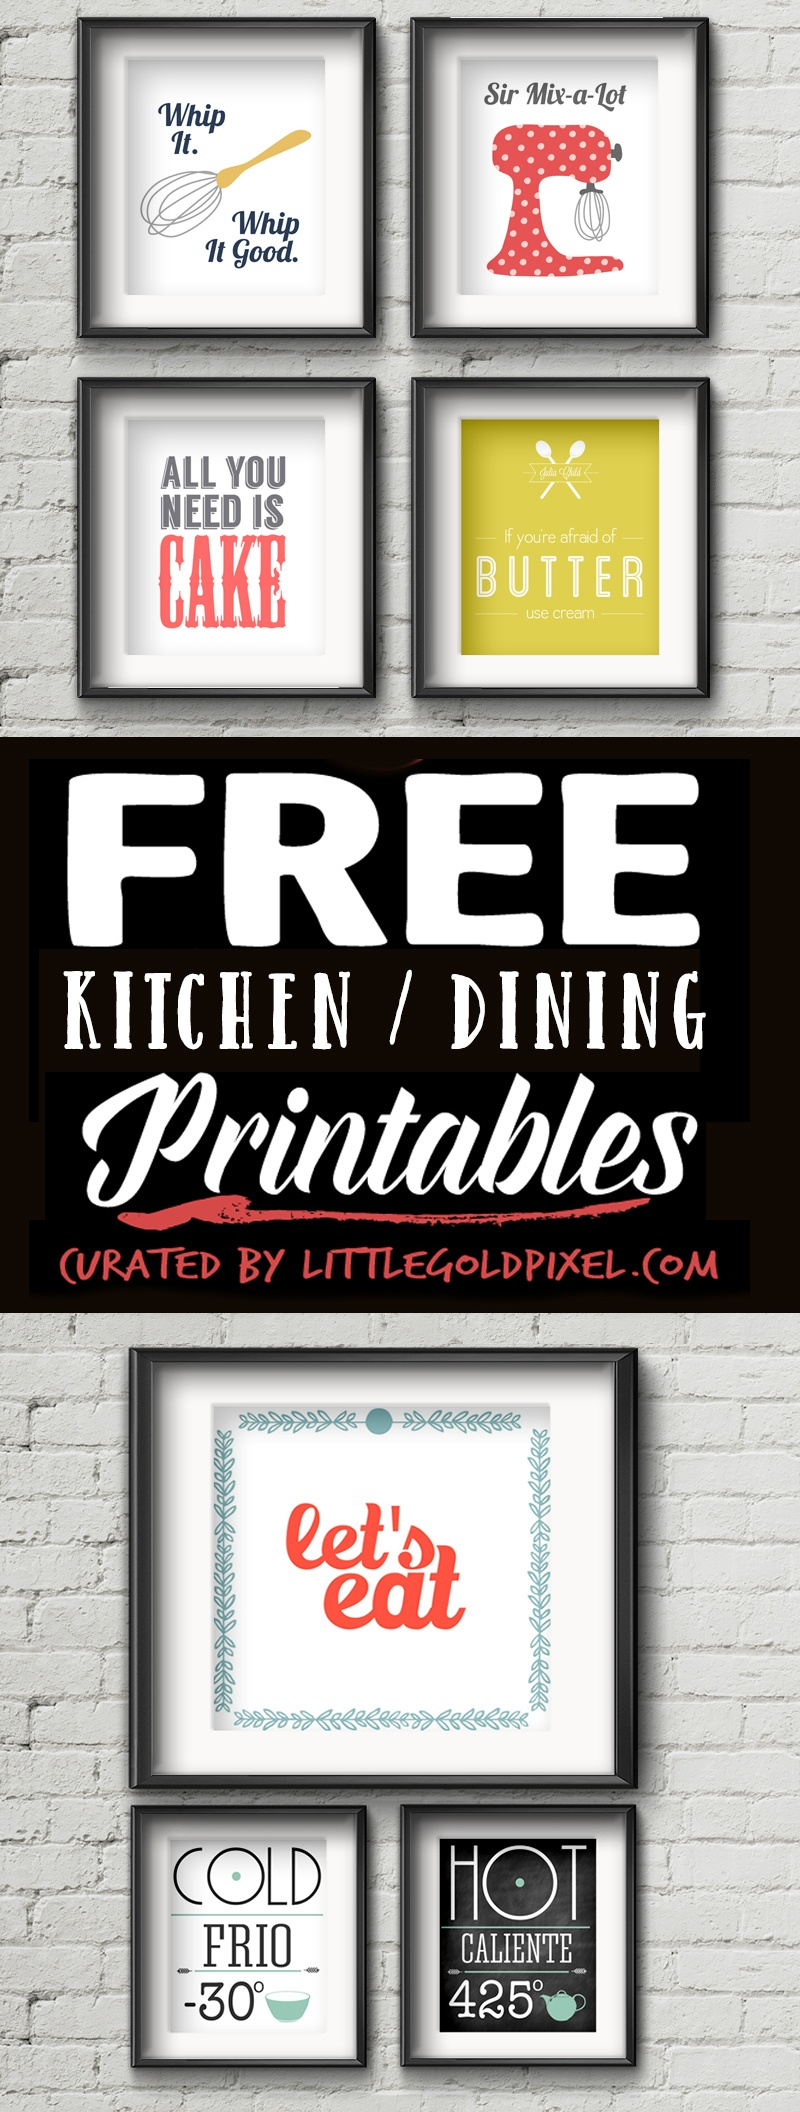 20 Kitchen Free Printables • Wall Art Roundup • Little Gold Pixel - Free Kitchen Printables